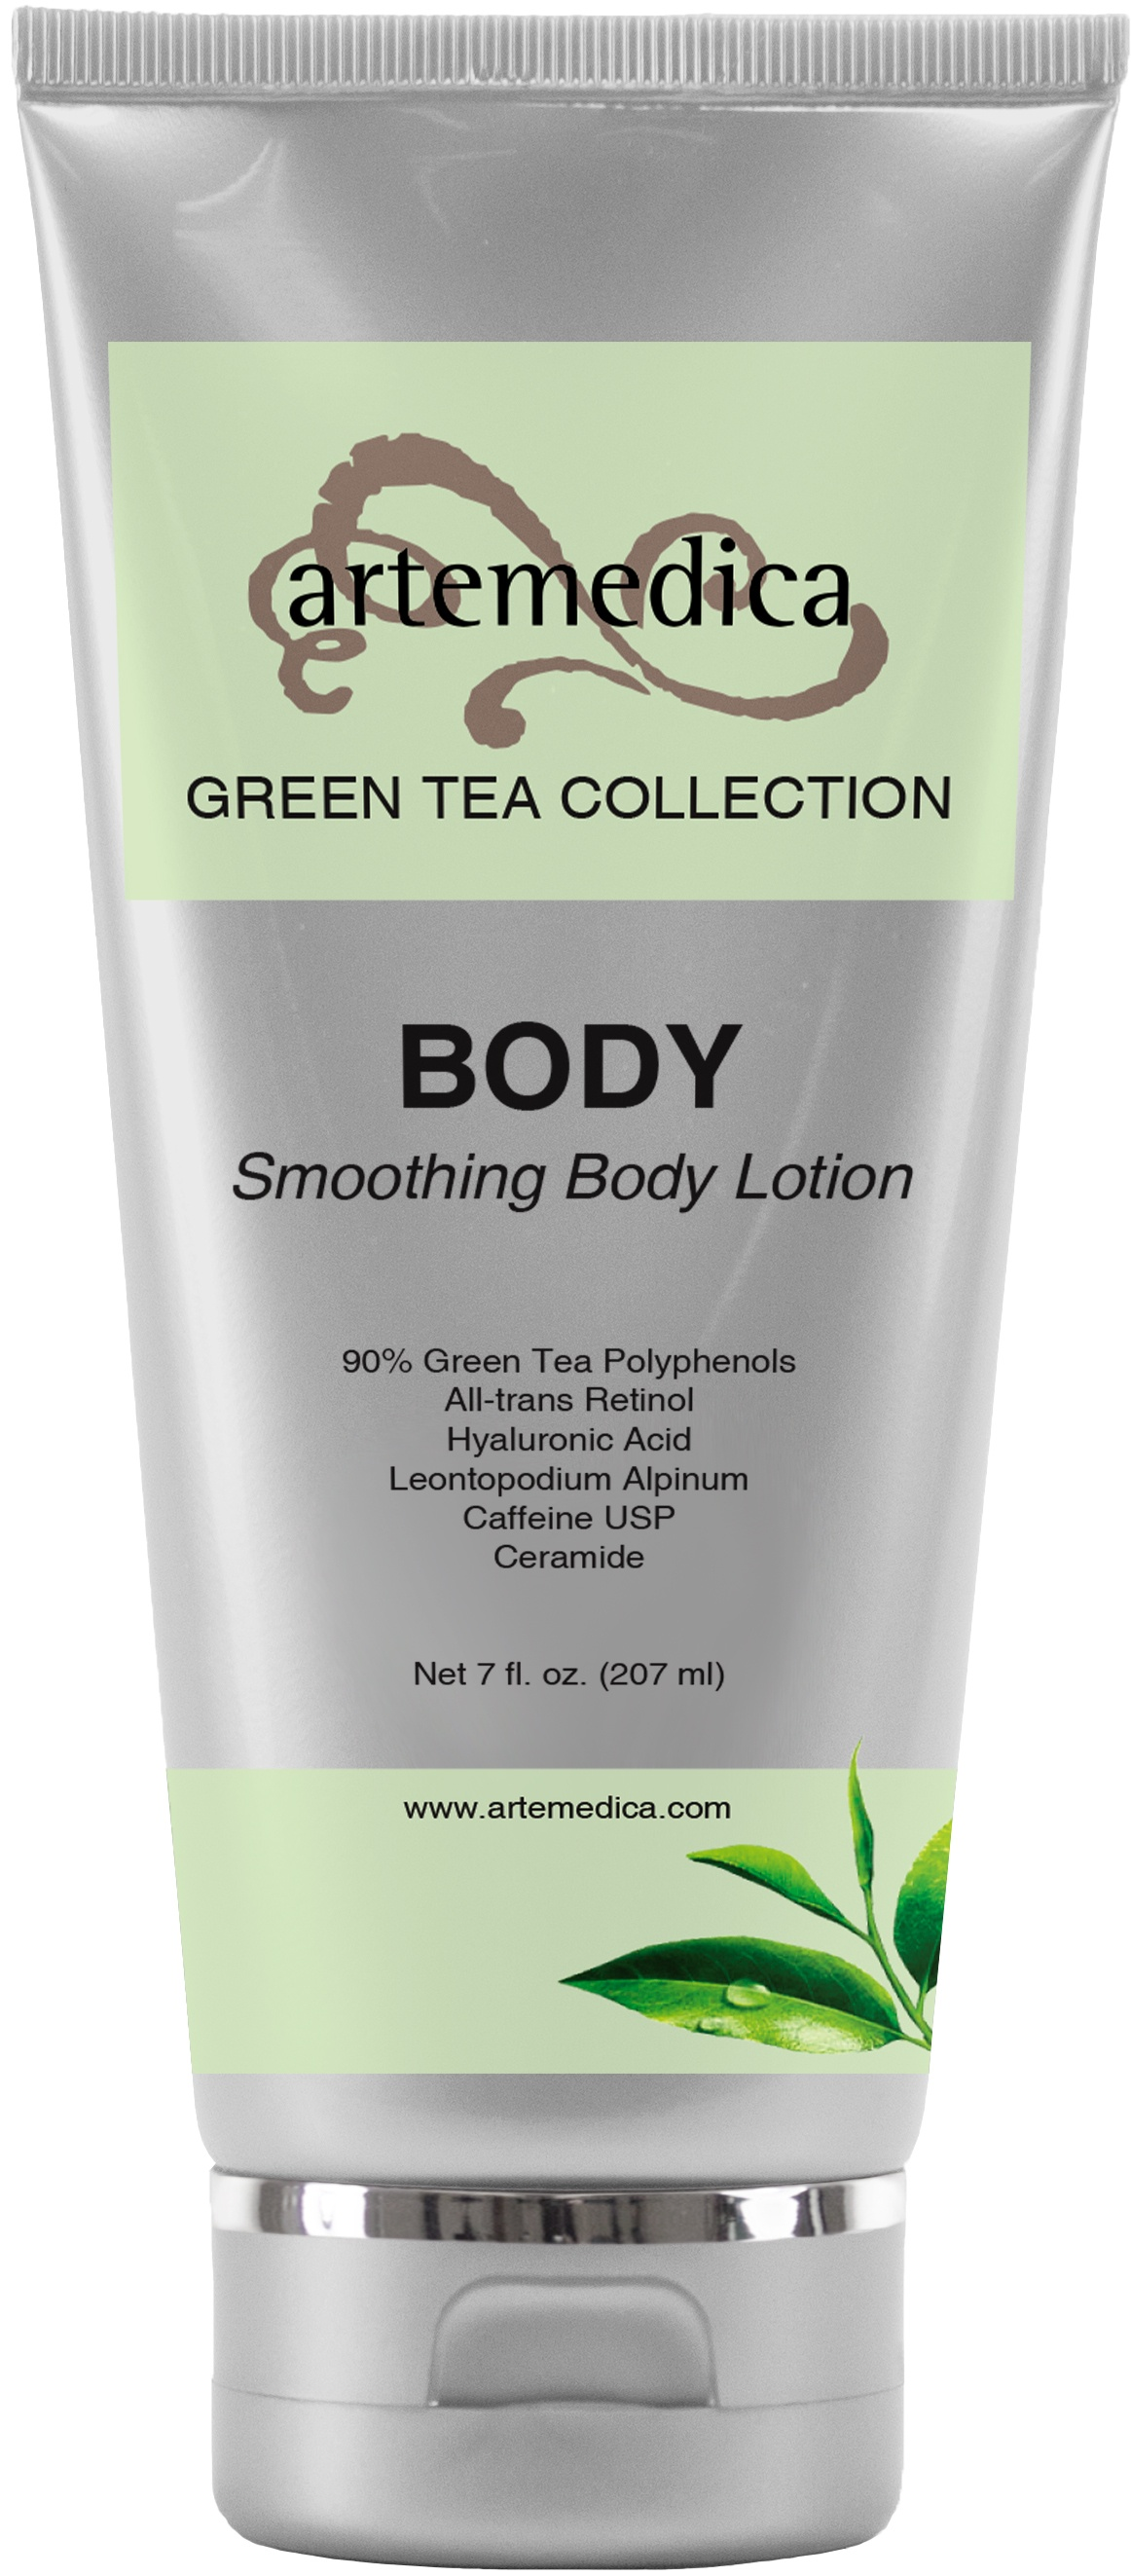 BODY Smoothing Body Lotion (Green Tea Collection)